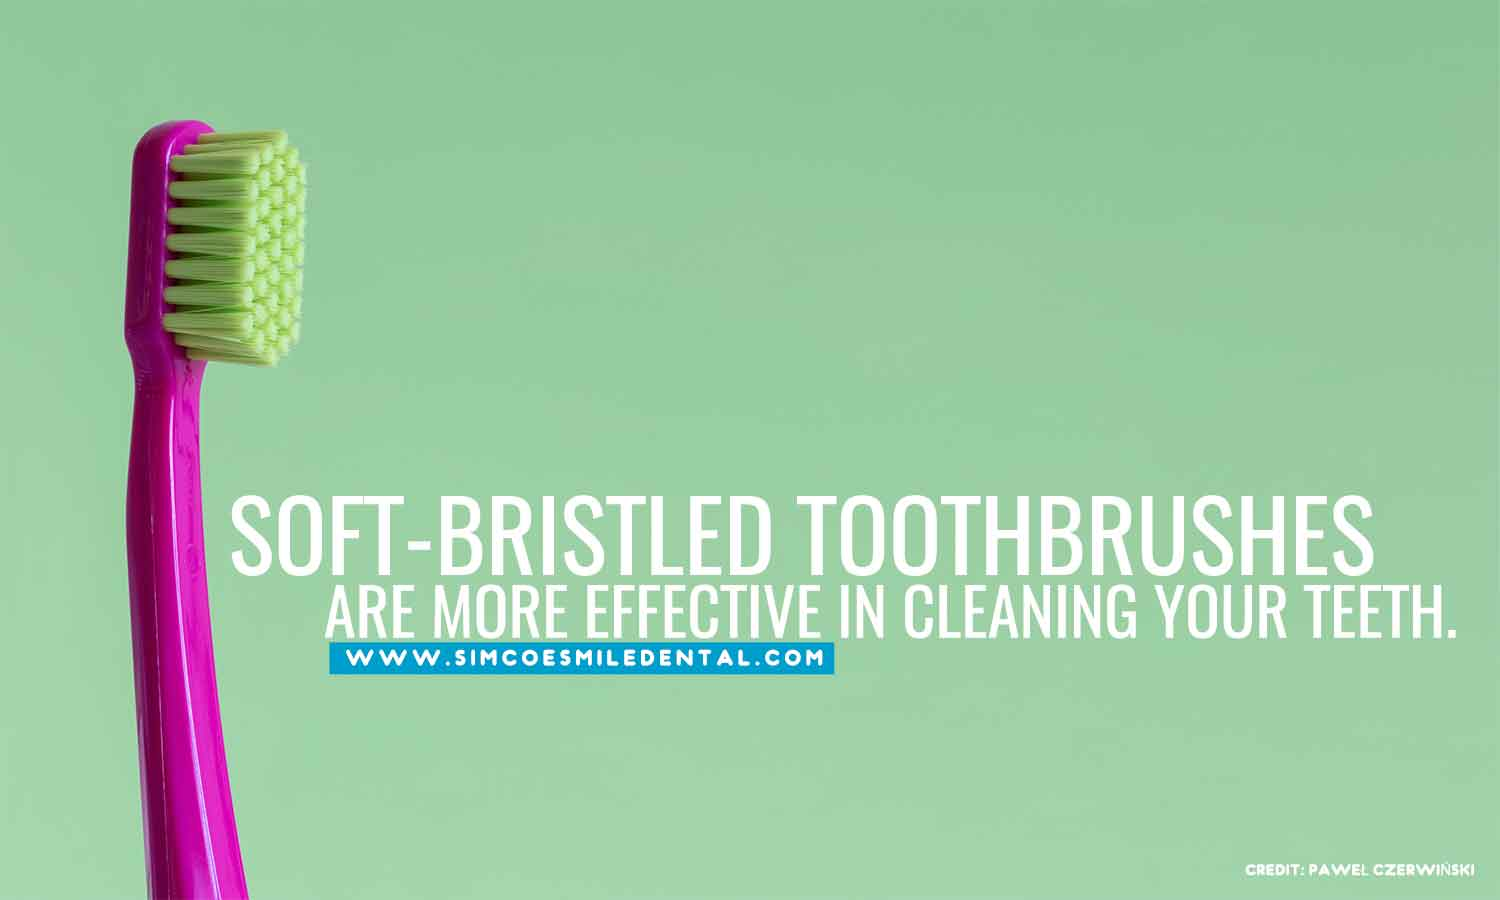 Soft-bristled-toothbrushes-are-more-effective-in-cleaning-your-teeth Overbrushing And Its Effects On Your Teeth